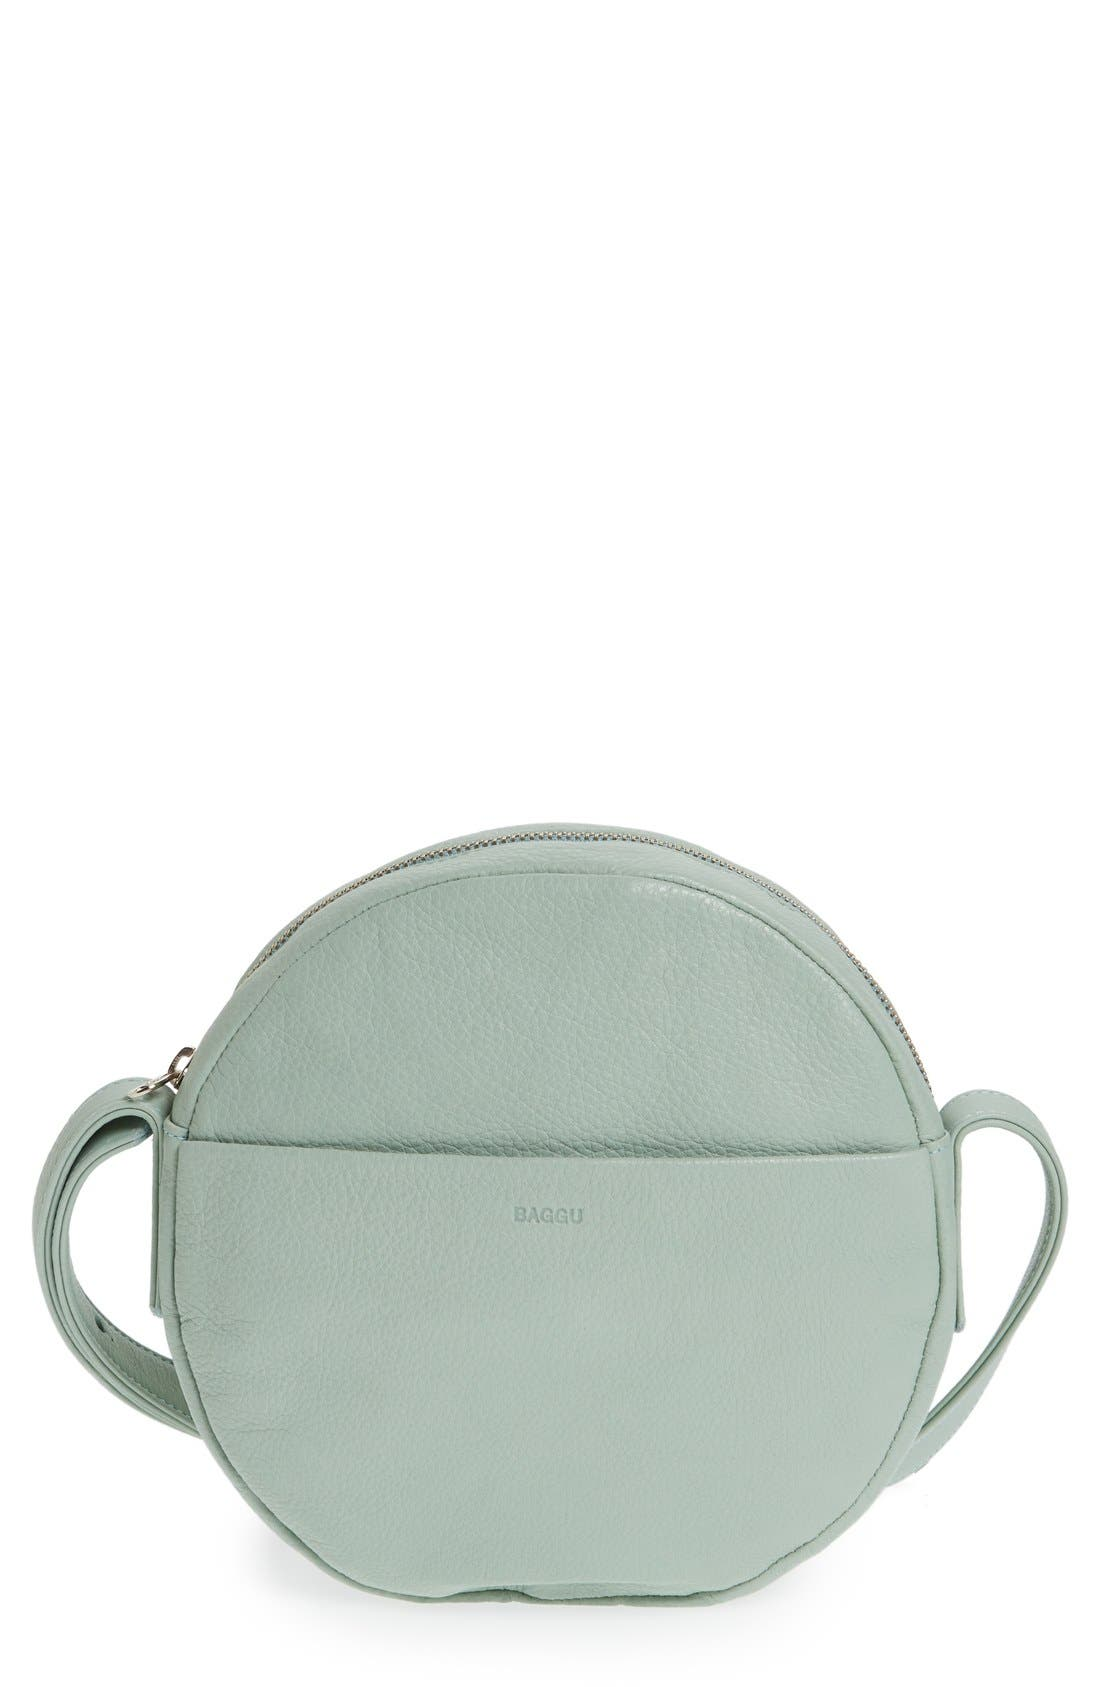 Alternate Image 1 Selected - Baggu Pebbled Leather Crossbody Bag